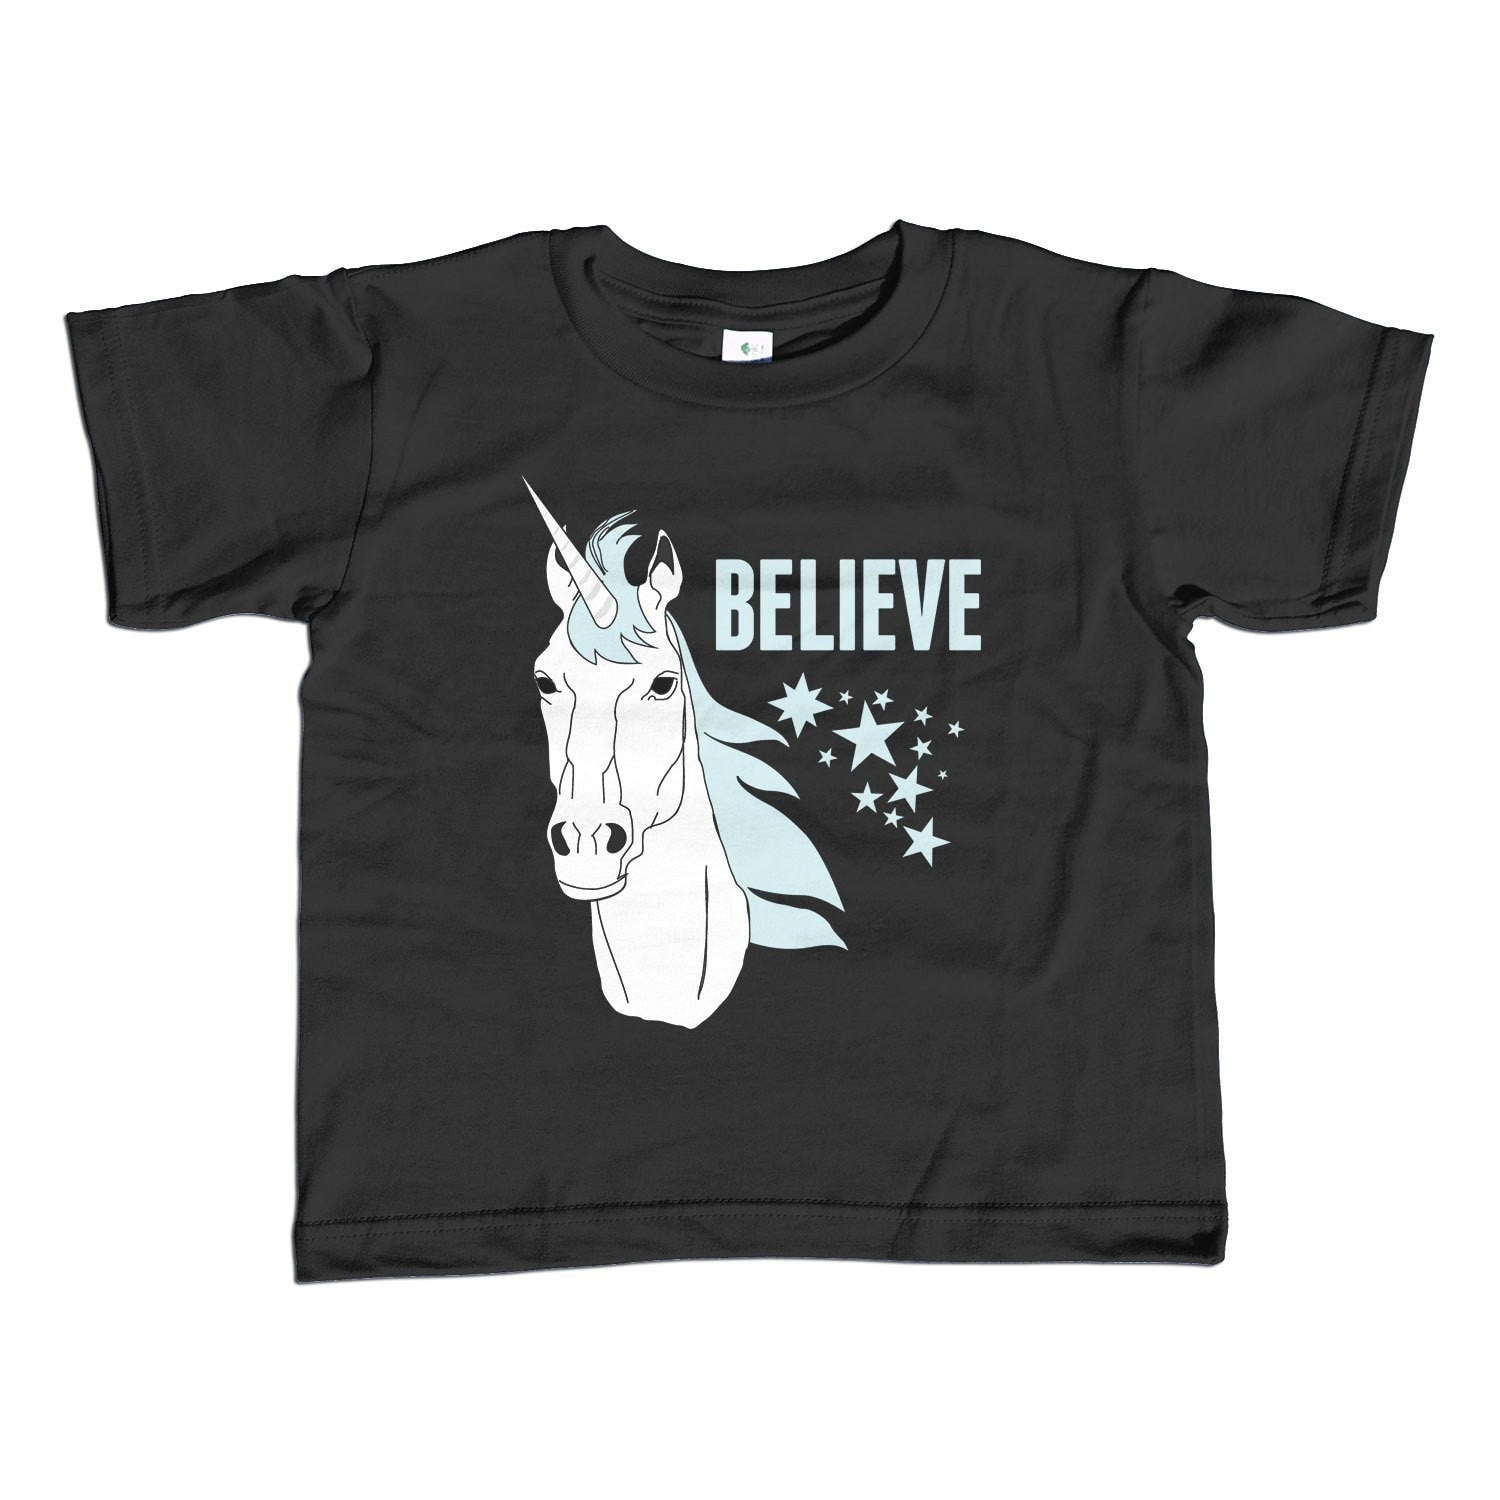 Girl's Believe in Unicorns T-Shirt - Unisex Fit Cute Unicorn Shirt